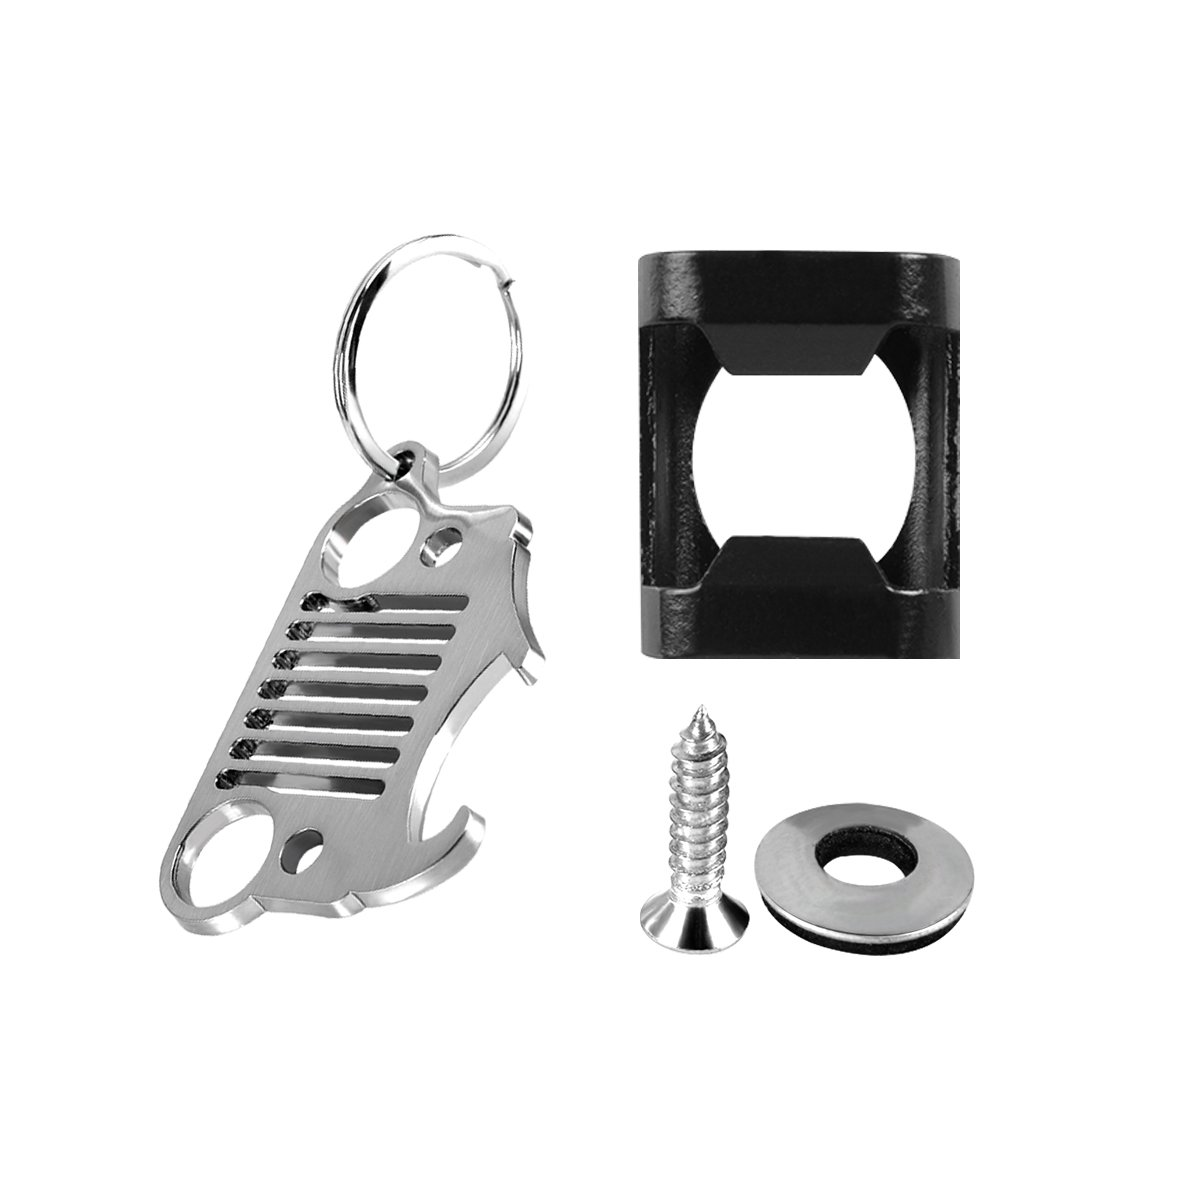 Wrangler License Plate Mounted Bottle Opener Accessory, AutoEC Bottle Opener for Rear License Plate fits Jeep Wrangler JK TJ Models with Key Chain Bottle Opener for Man and Women